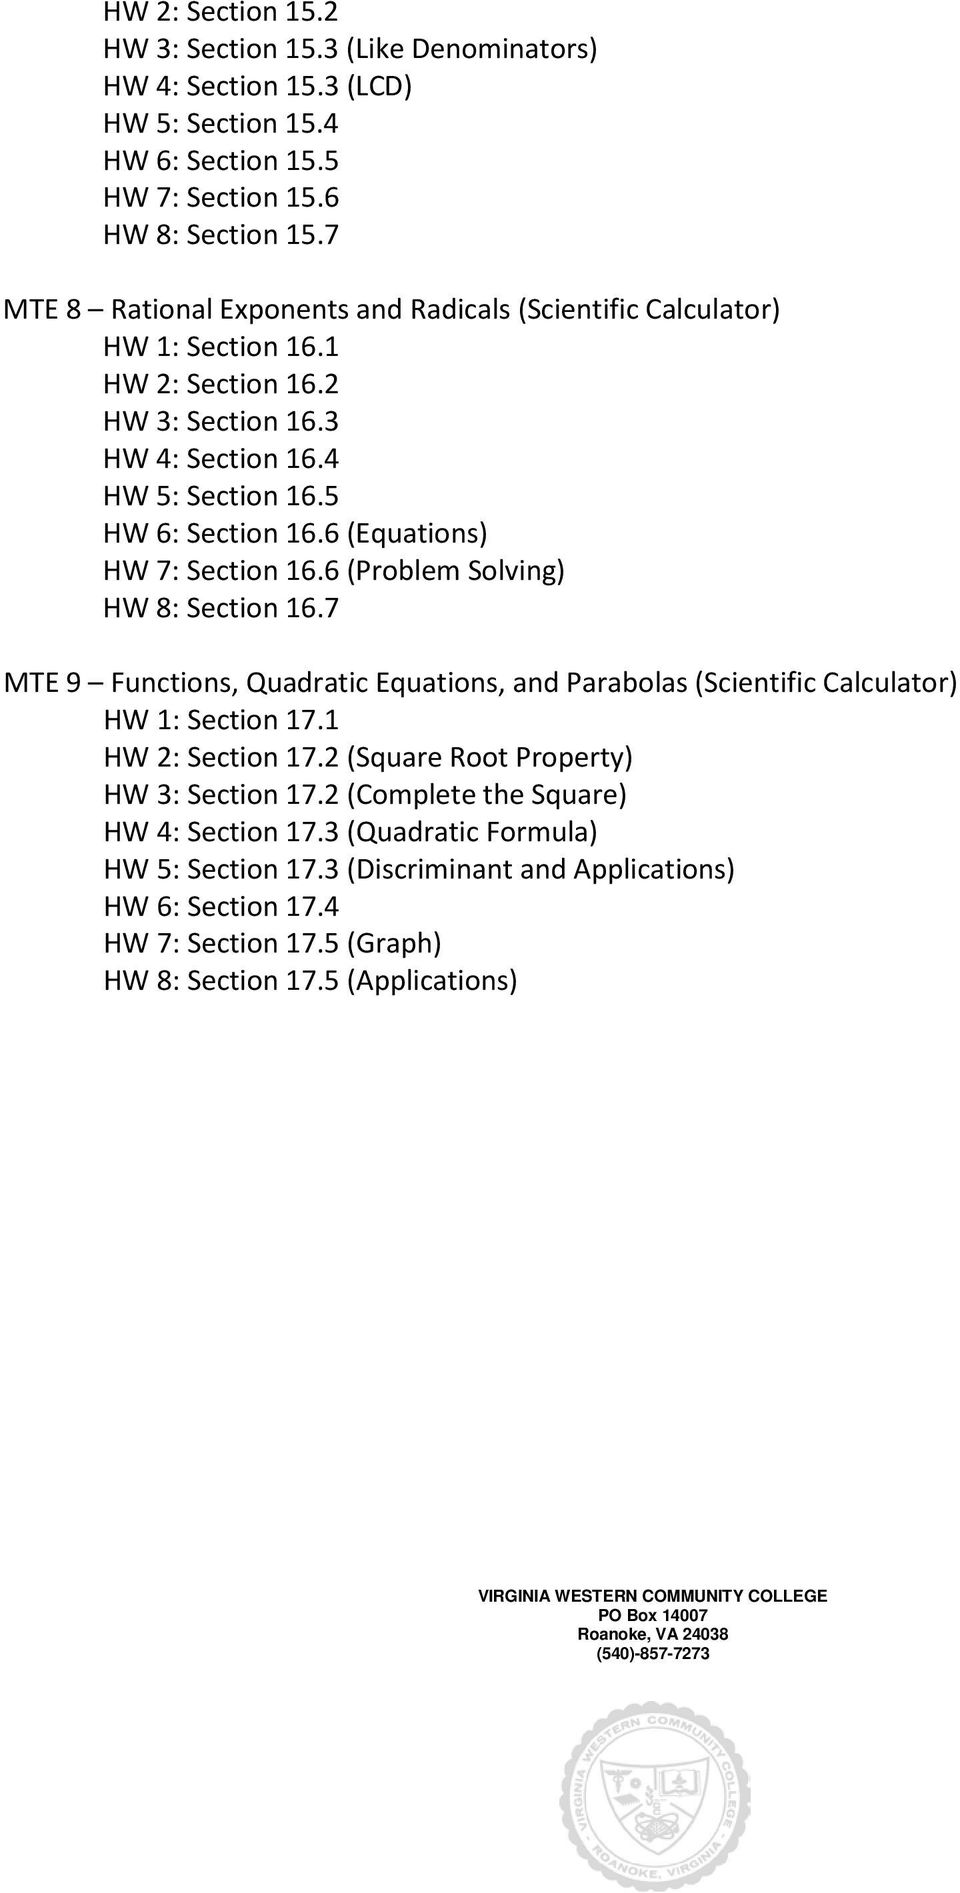 6 (Equations) HW 7: Section 16.6 (Problem Solving) HW 8: Section 16.7 Functions, Quadratic Equations, and Parabolas (Scientific Calculator) HW 1: Section 17.1 HW 2: Section 17.